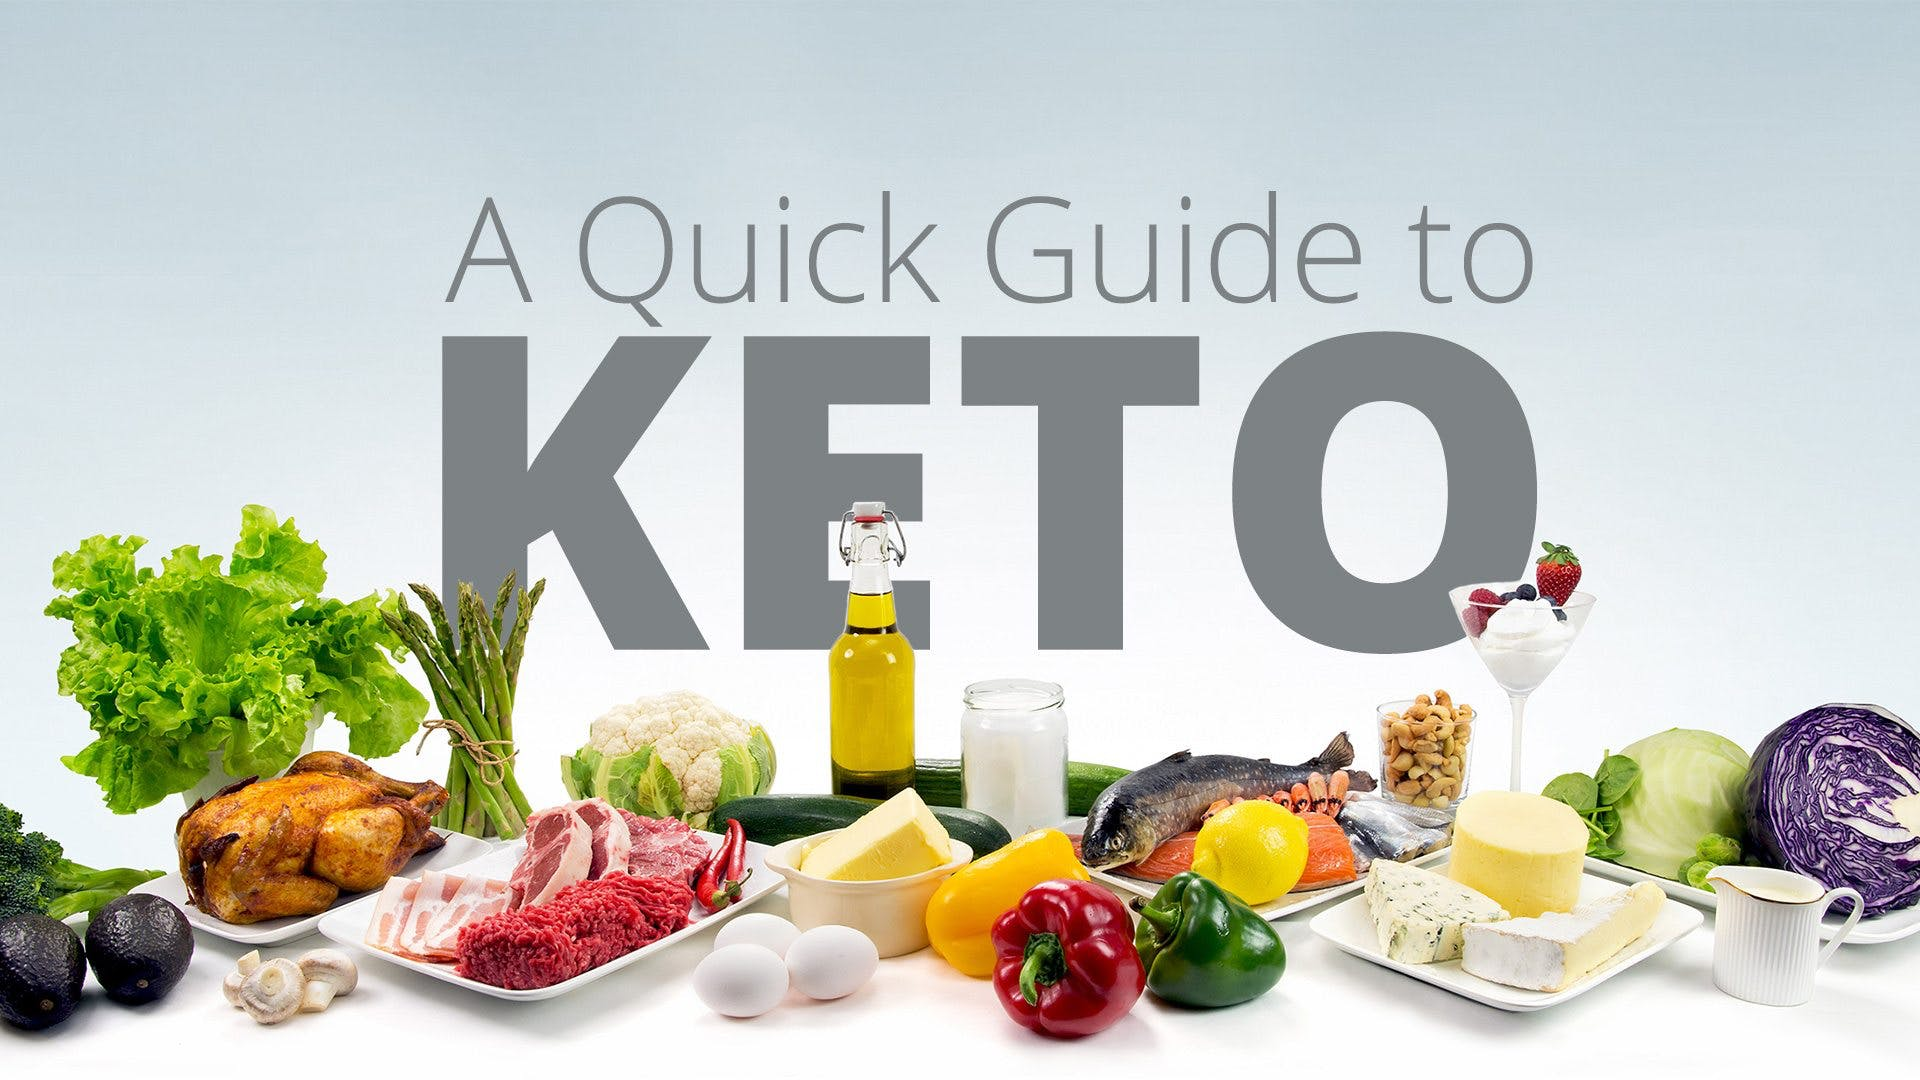 A Quick Guide to Ketogenic Diets